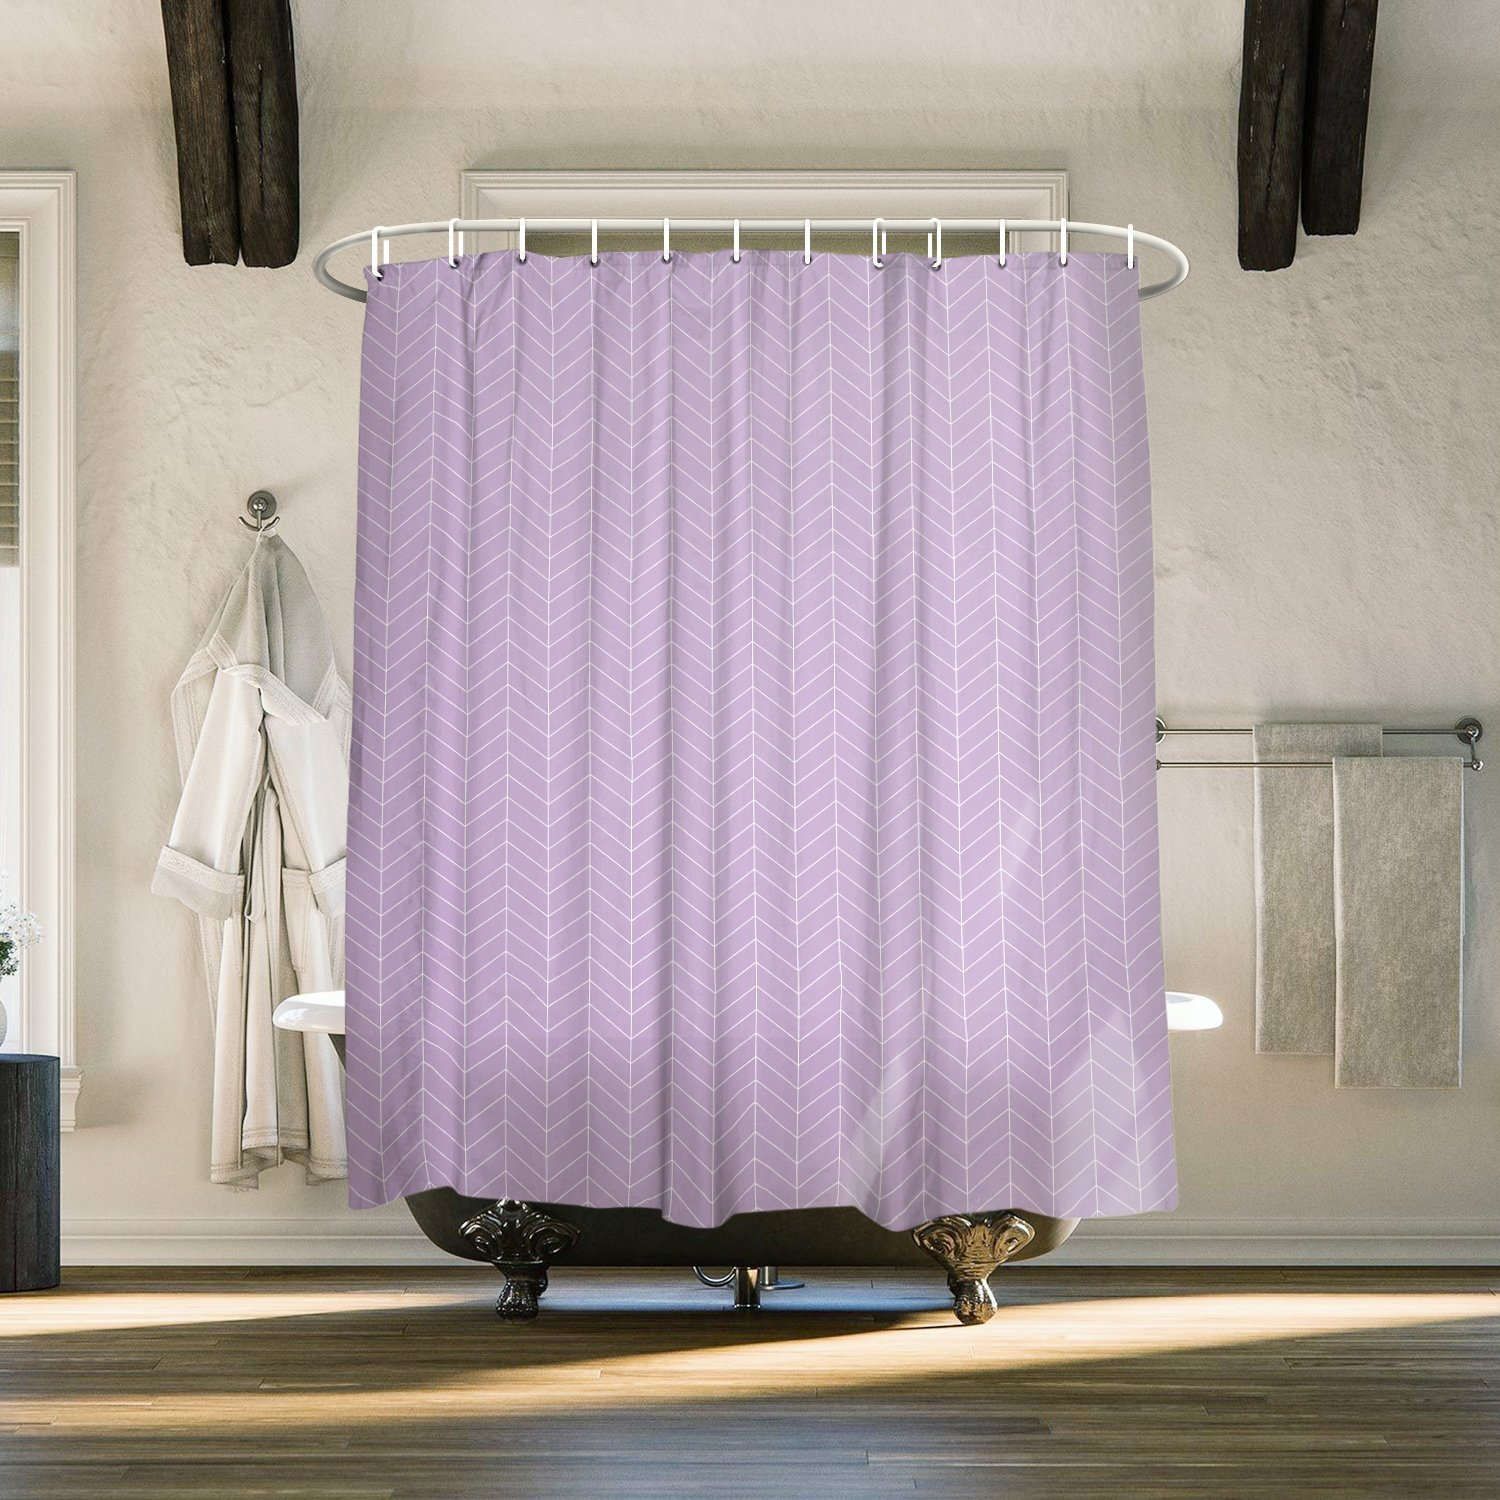 Us 19 94 26 Off Grey Stripe Natural Herringbone 84 Inch Extra Long Shower Curtains Fabric Polyester Bathroom Curtains With Hooks In Shower Curtains